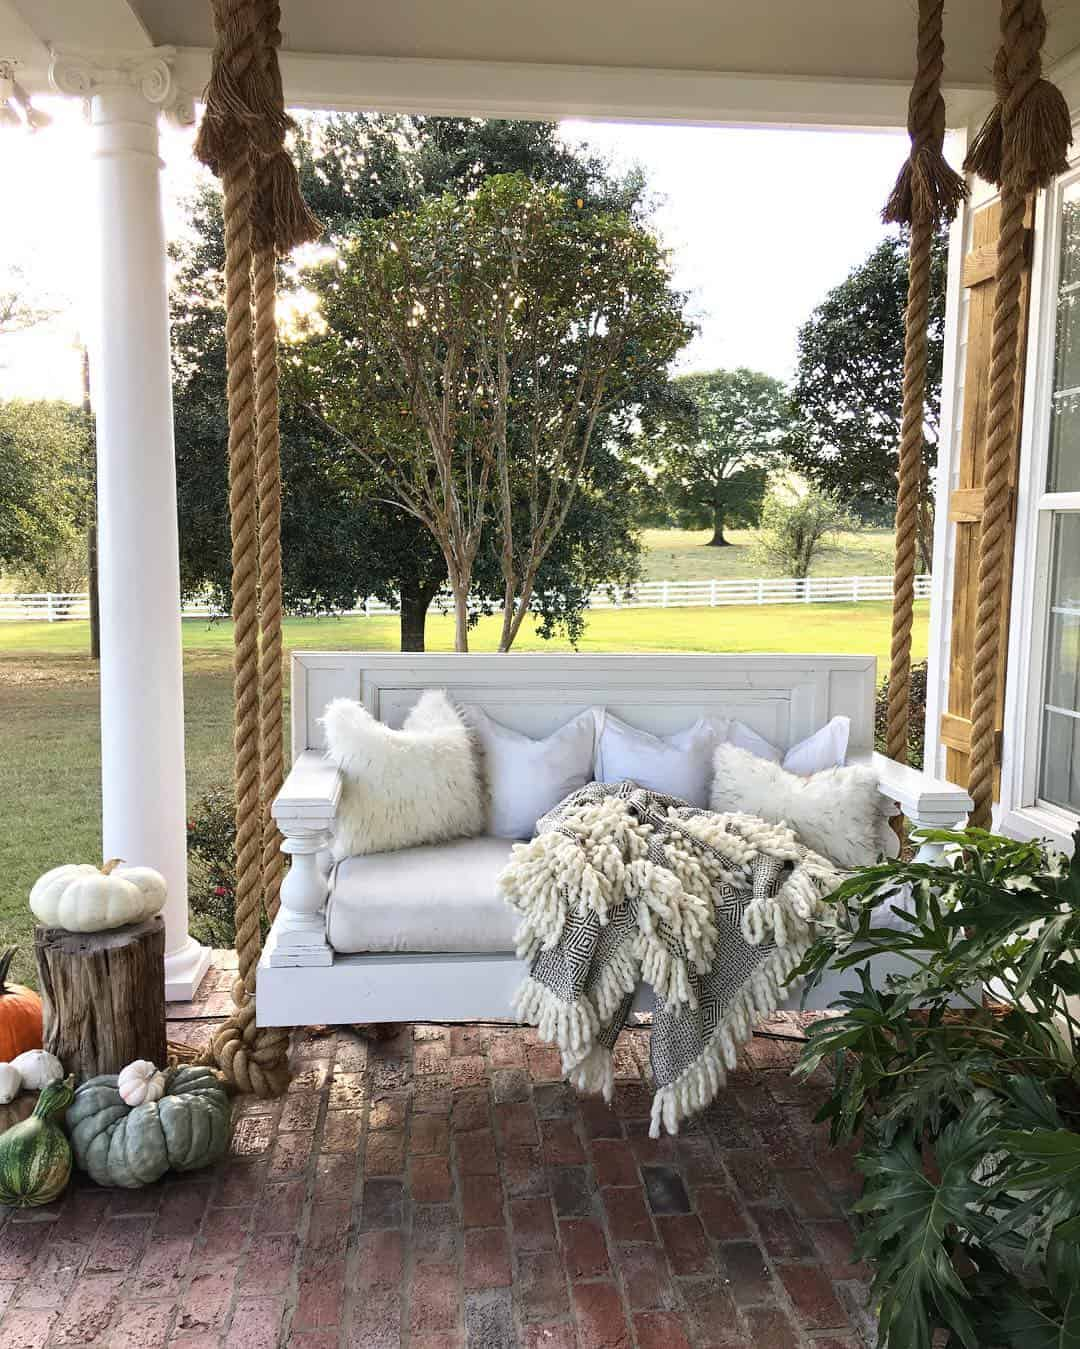 Additionally, it adds another seating area to your porch that can host 2-3 guests at once